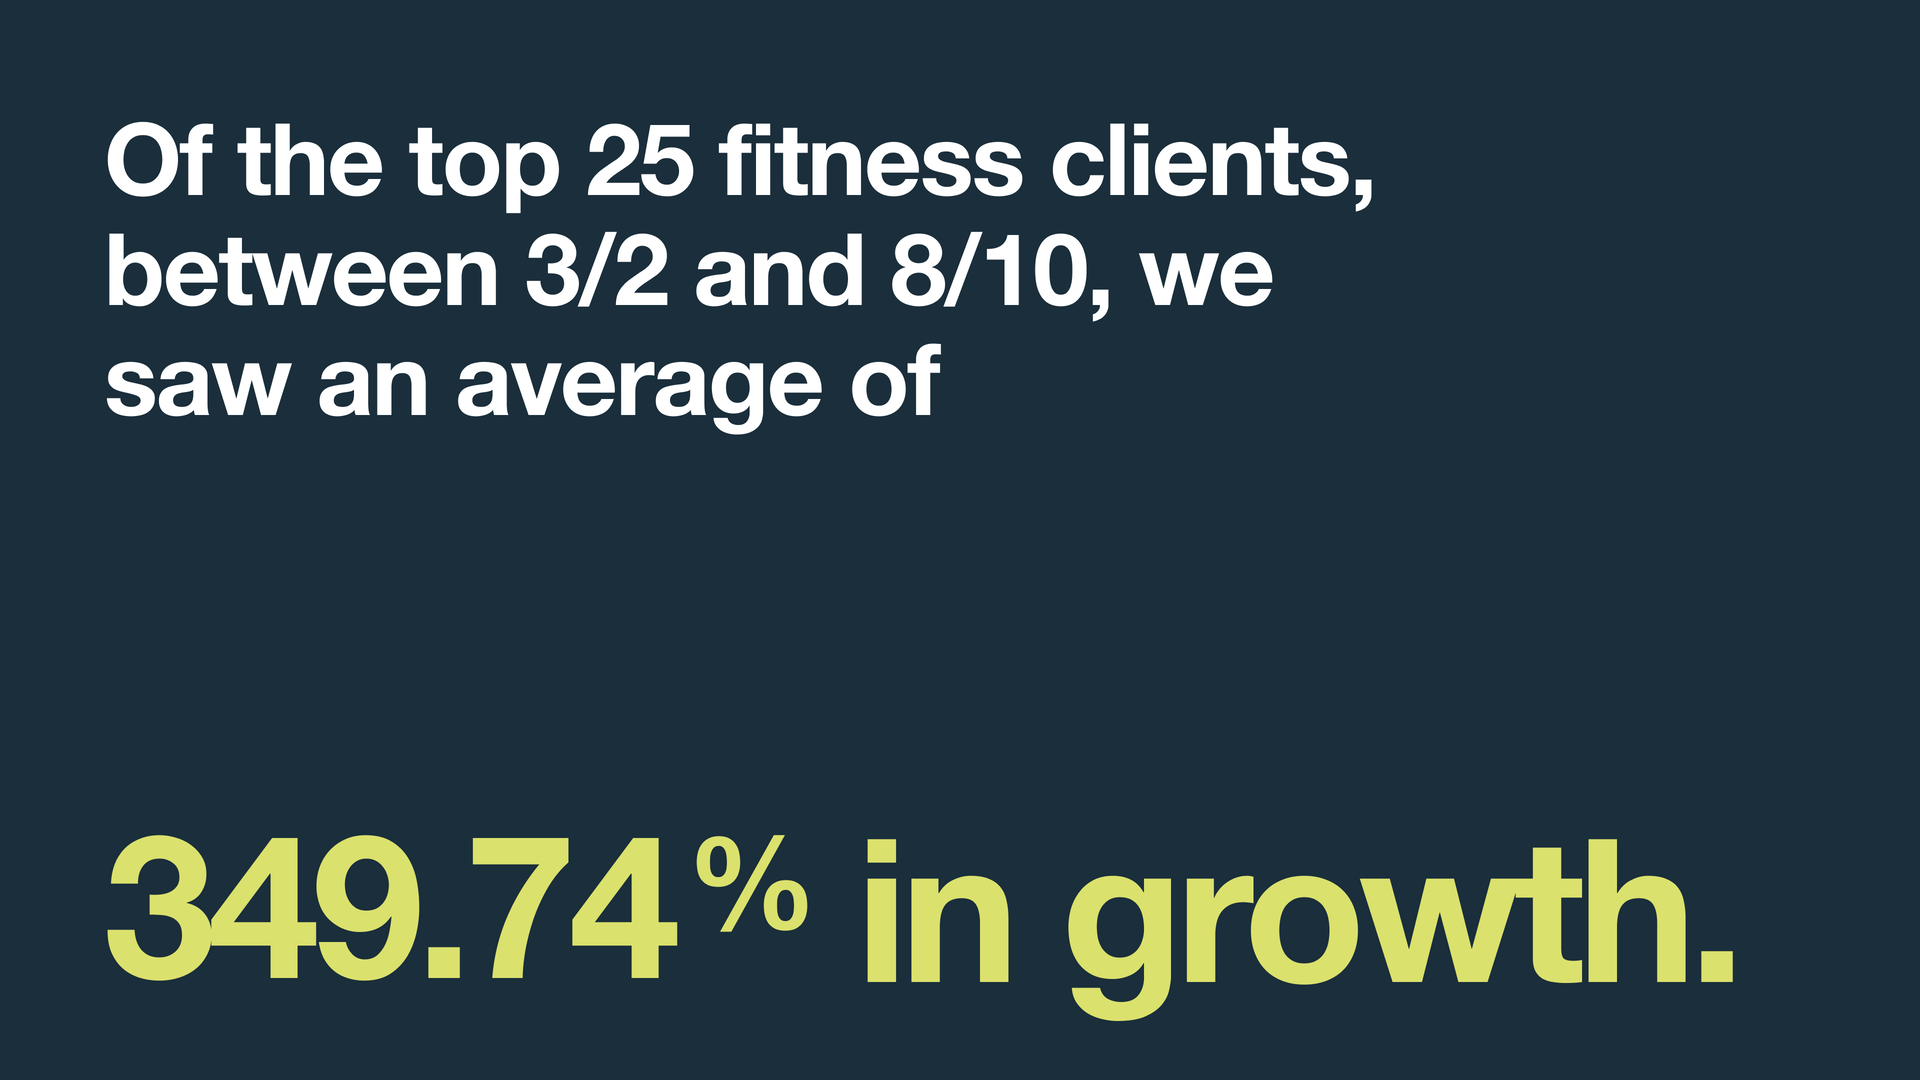 """Fitness statistic stating, """"Of the top 25 fitness clients, between 3/2 and 8/10, we saw an average of 3489.74% in growth."""